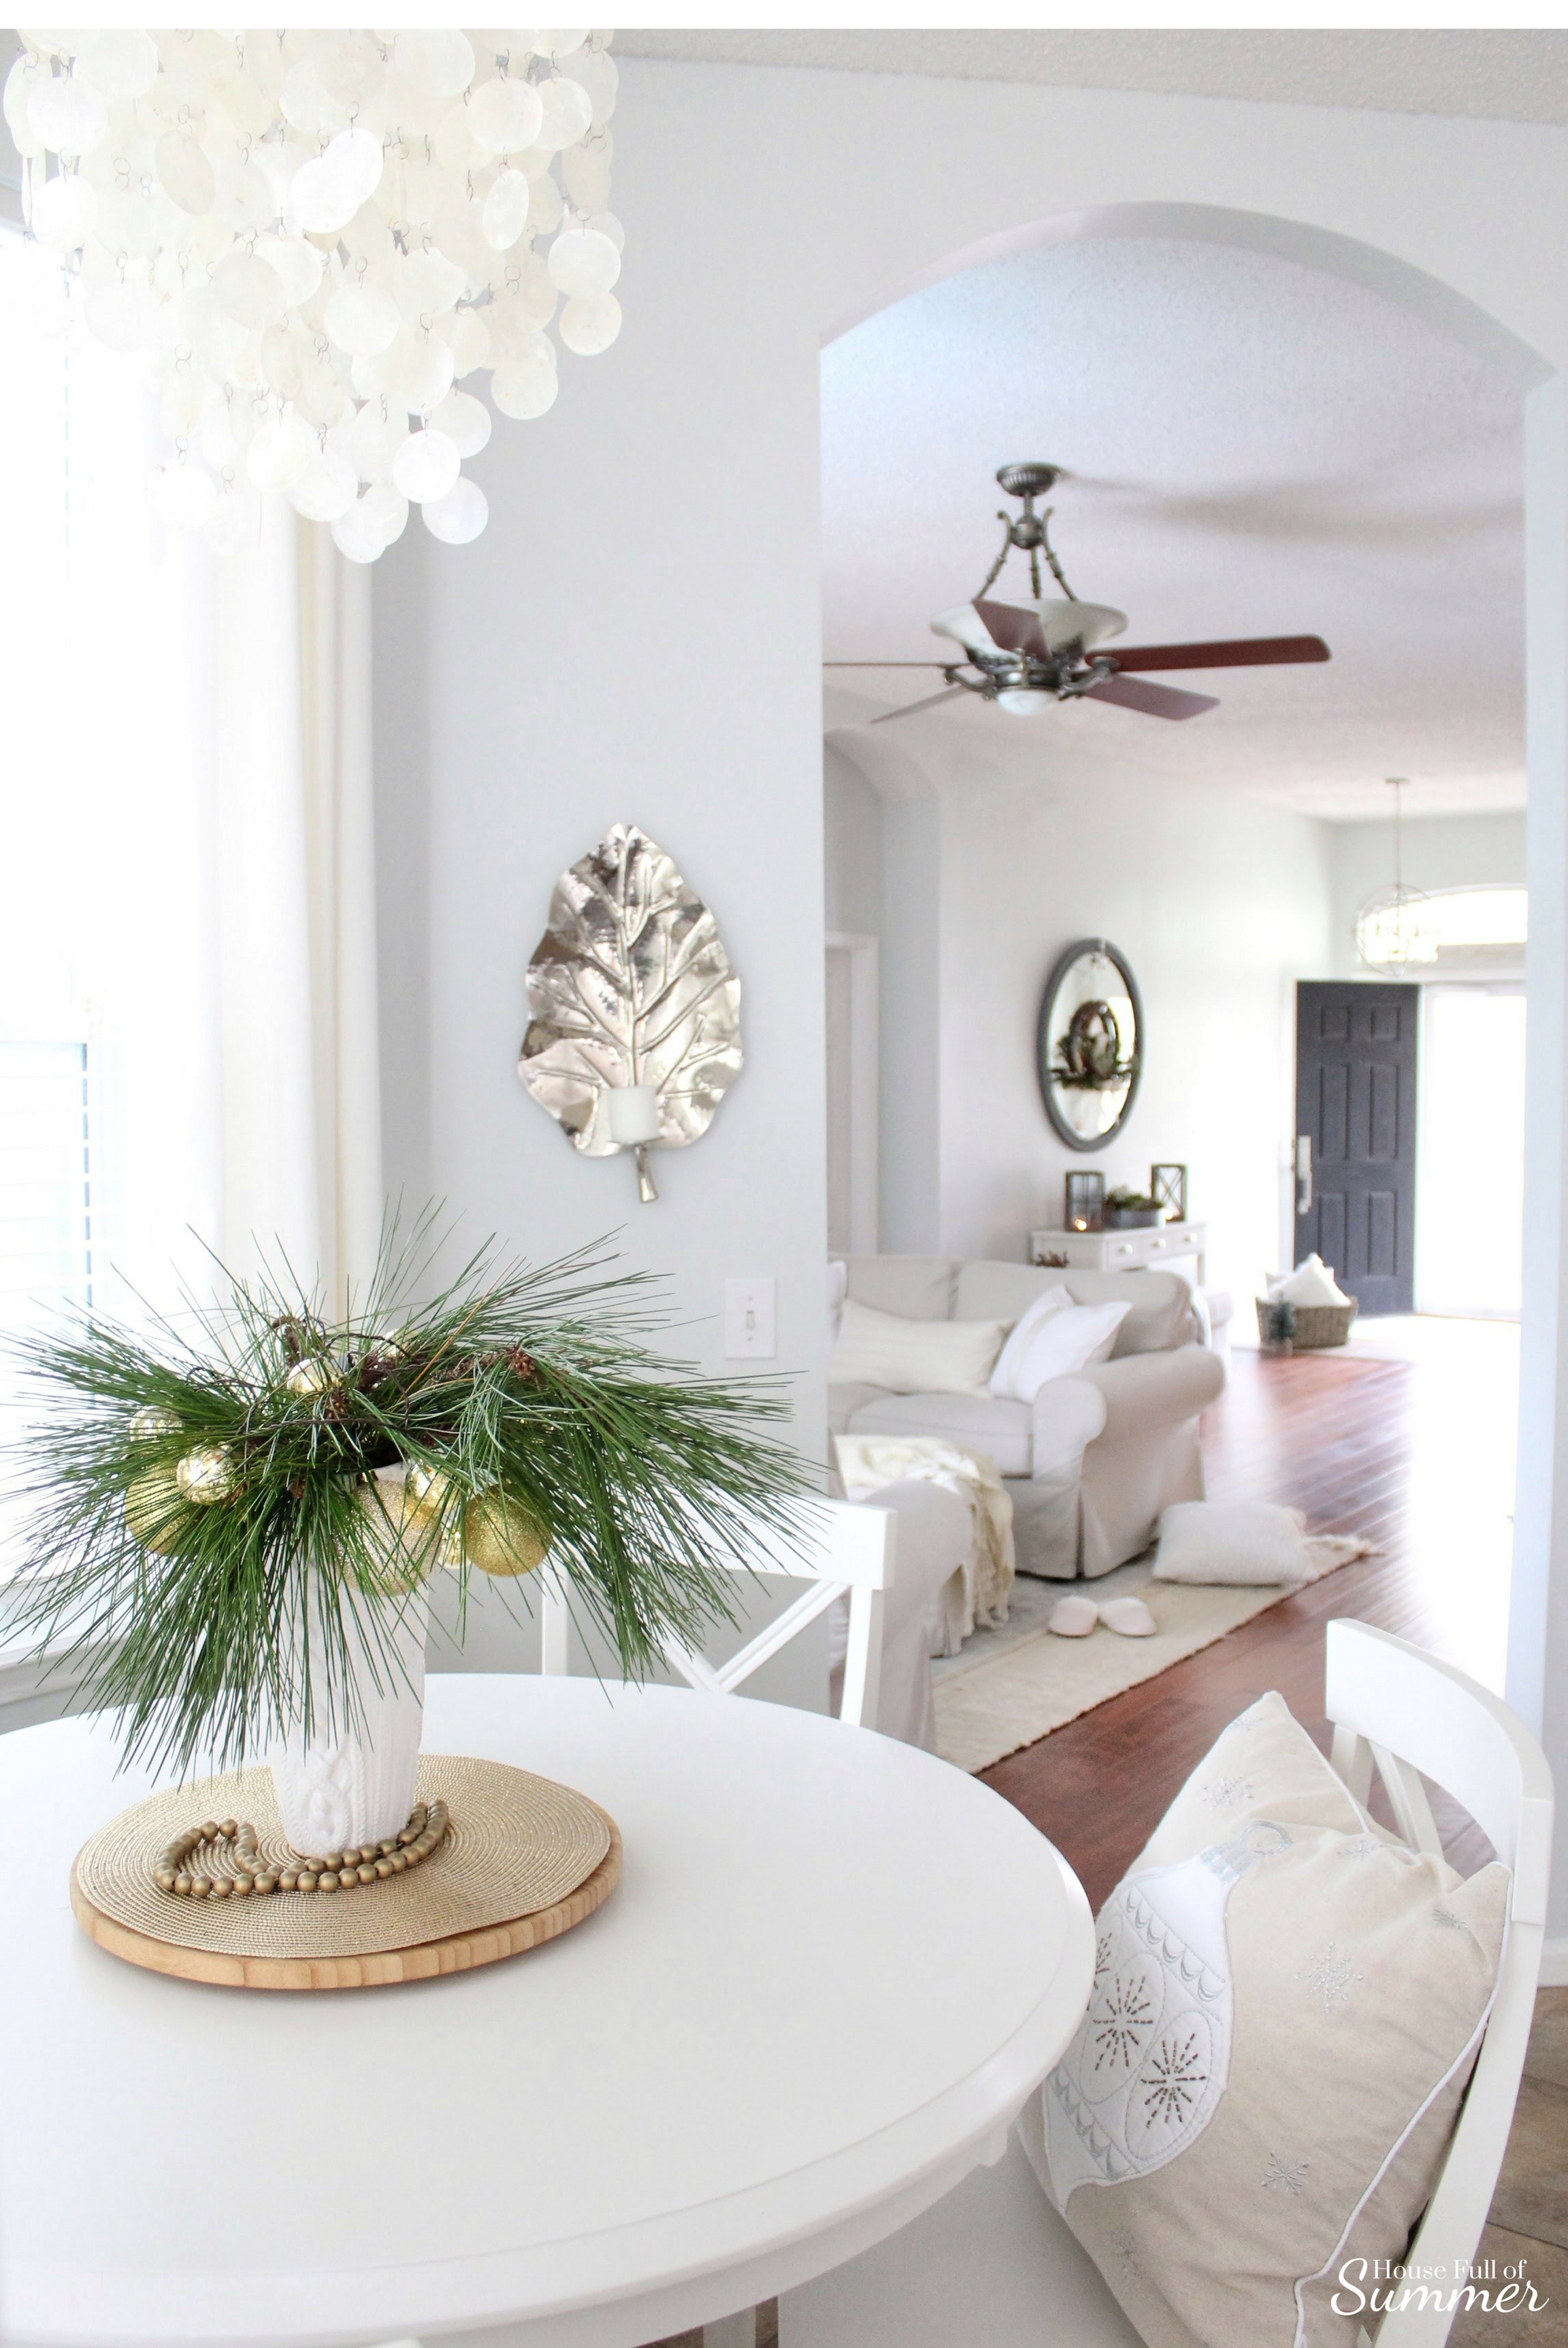 Add New Life to Your Home With This New Year's Resolution | House Full of Summer blog adding greenery to your home, decorating with plants, fronds, trimmings, winter decor, home decor, coastal home interior, capiz chandelier, decor on a budget,  hamptons style, white breakfast nook, extra long white curtains, coastal winter ideas